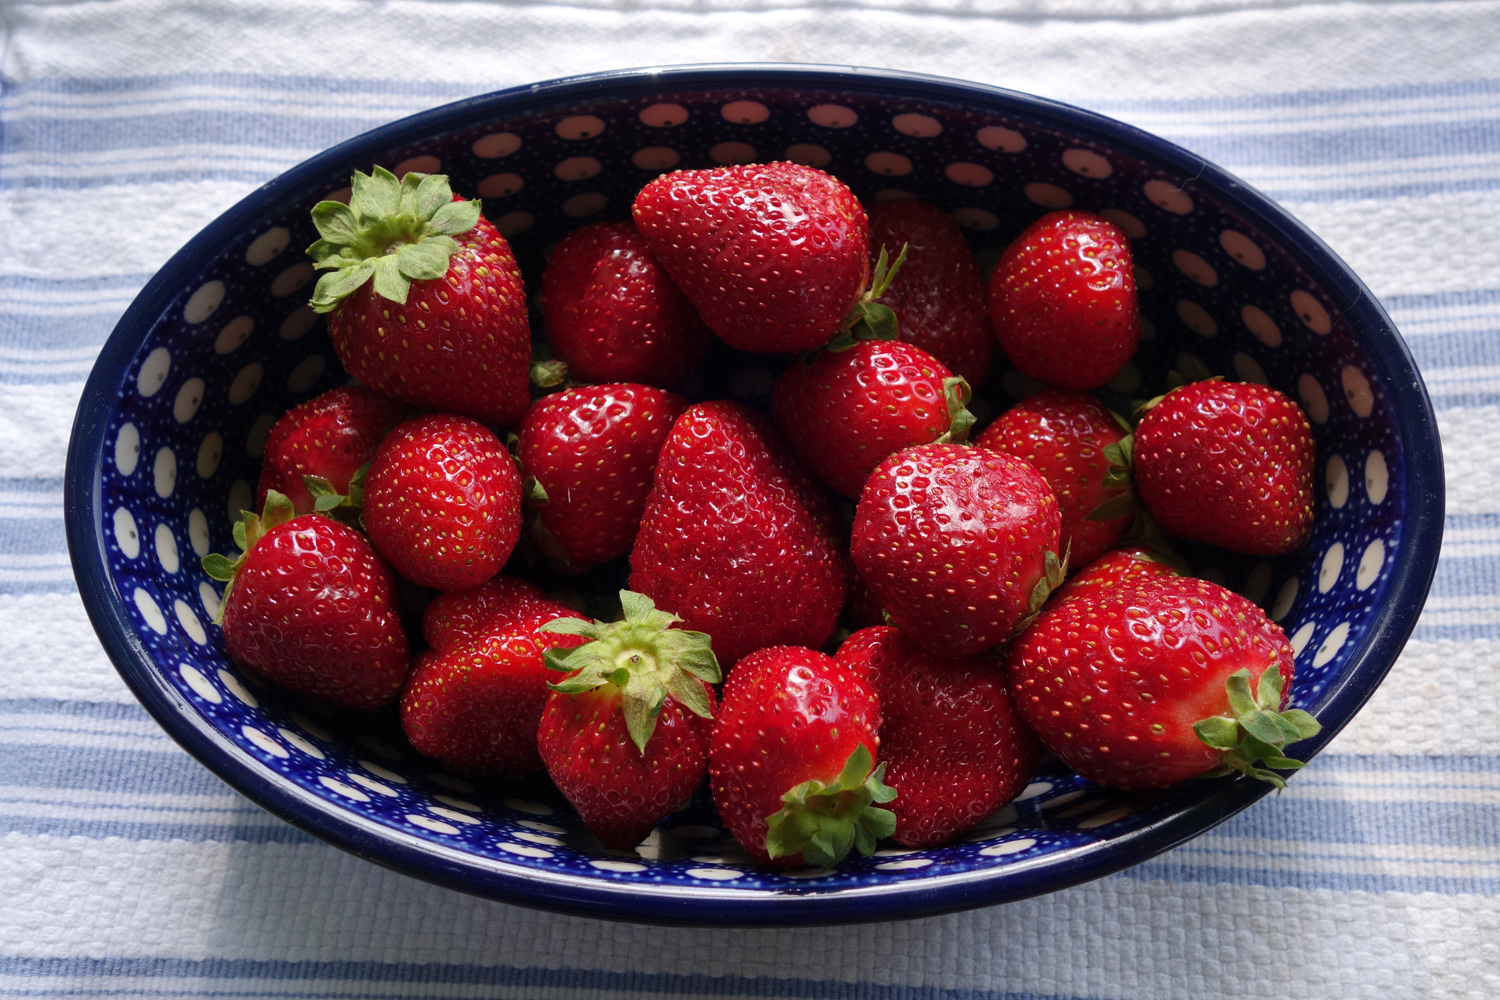 new-york-state-berry-growers-association-strawberries-are-good-for-skin.jpg